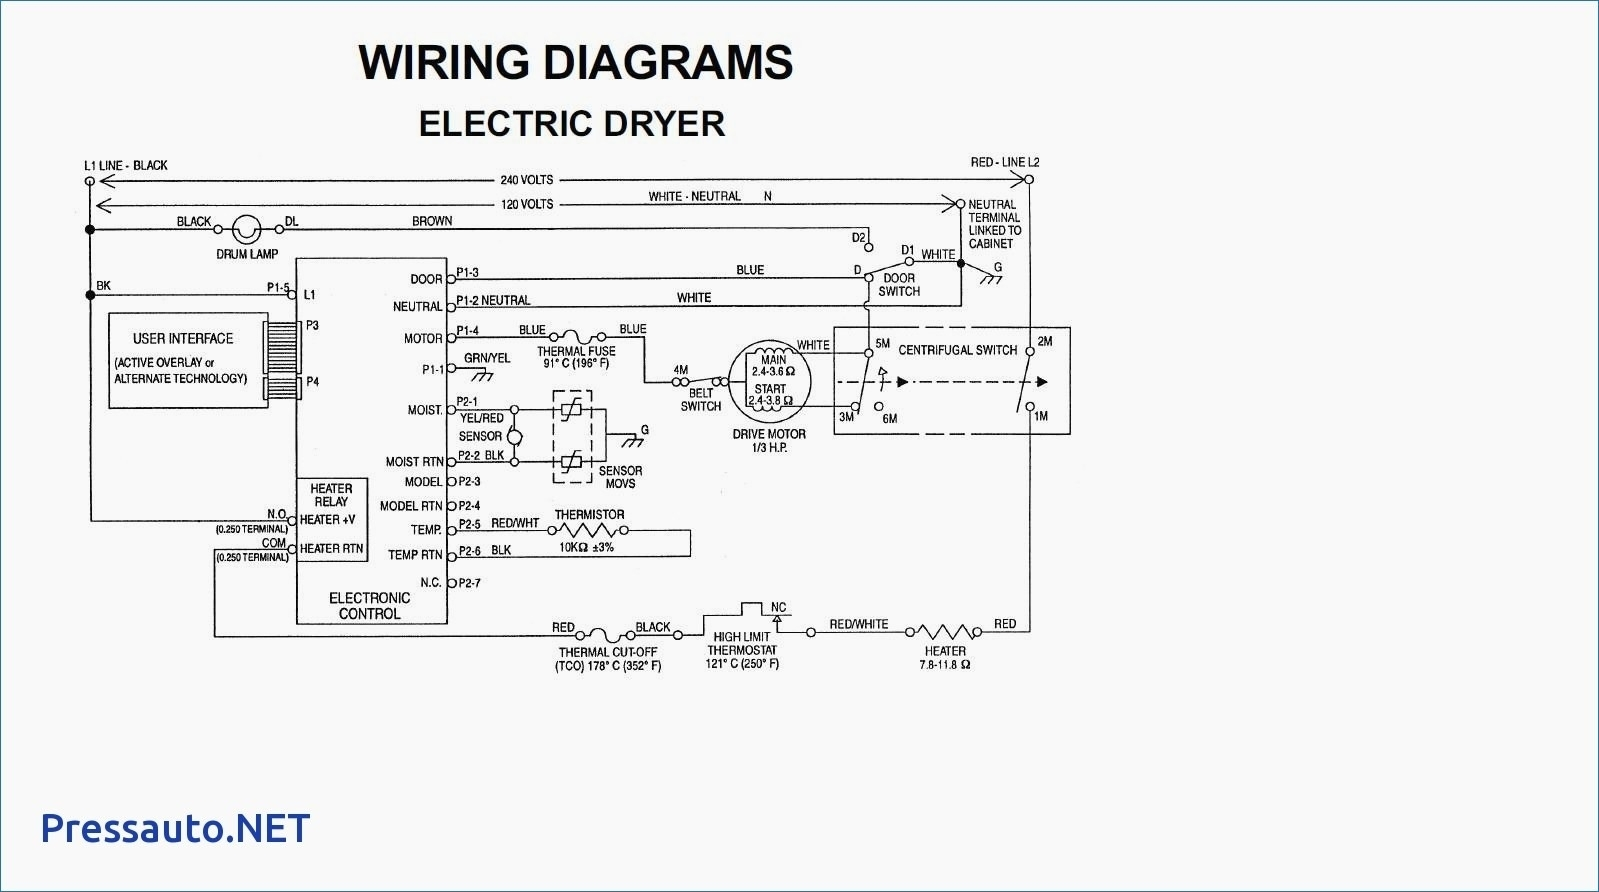 Amana Ptac Wiring Diagram Free Wiring Diagram 1599 x 892 jpeg amana-ptac-wiring-diagram-amana-ptac-wiring-diagram-best-amana-dryer-troubleshooting-free-troubleshooting-examples-19h.jpg